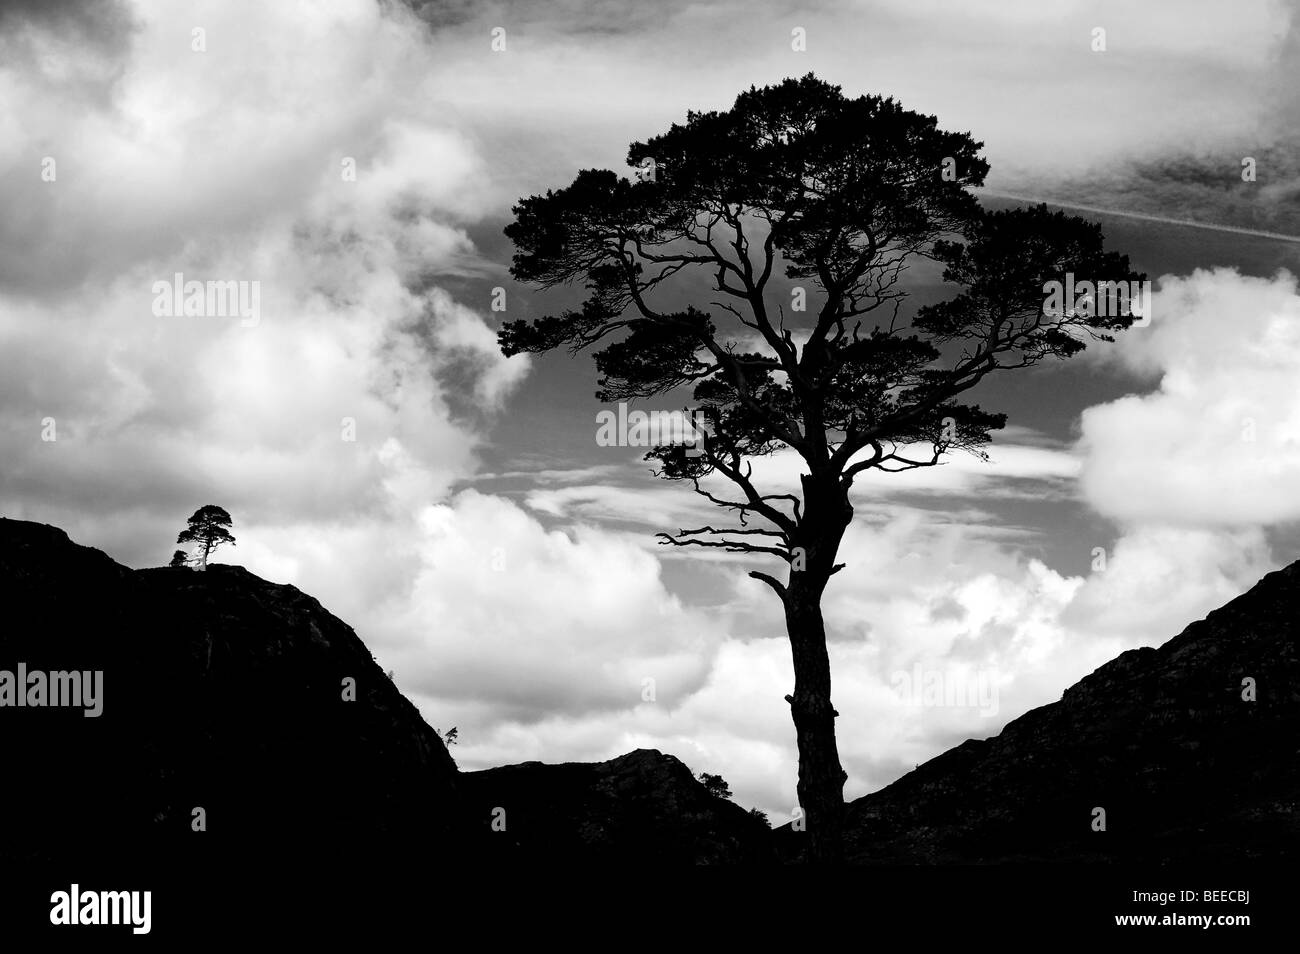 A Scots Pine tree silhouette against a cloudy sky. Highlands, Scotland. Black and White - Stock Image